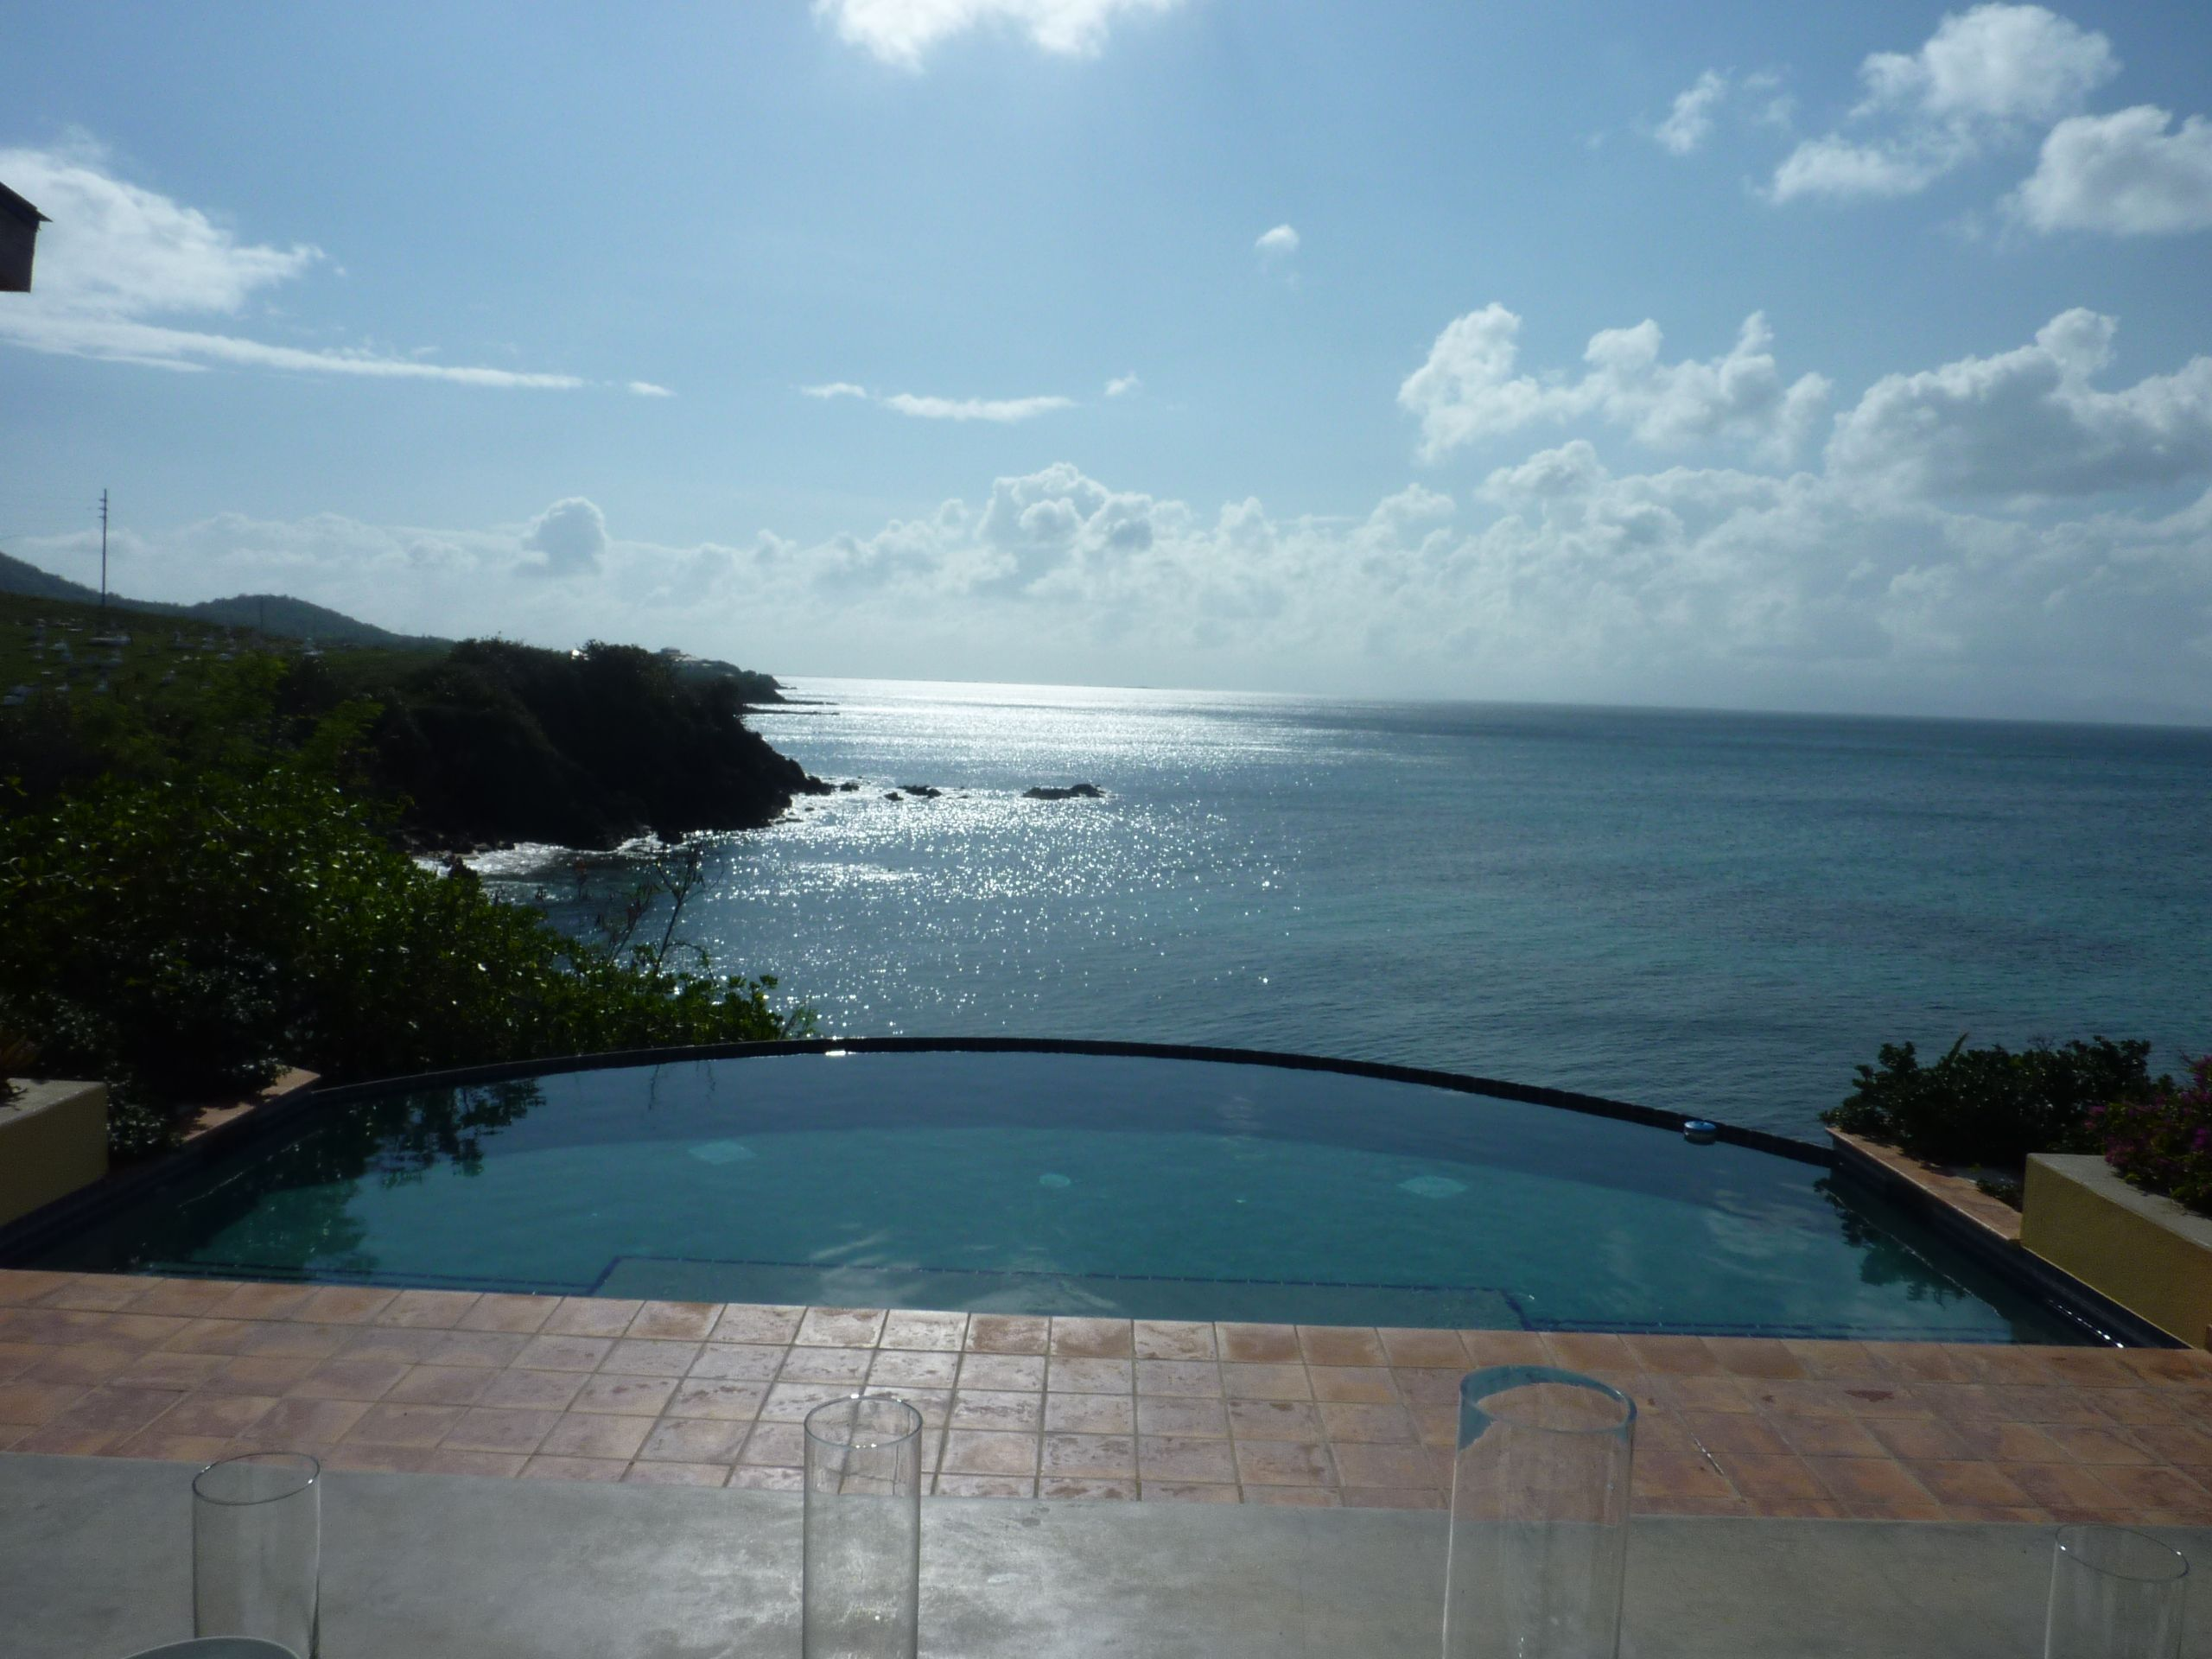 A view from one of the wedding venues on Vieques Island